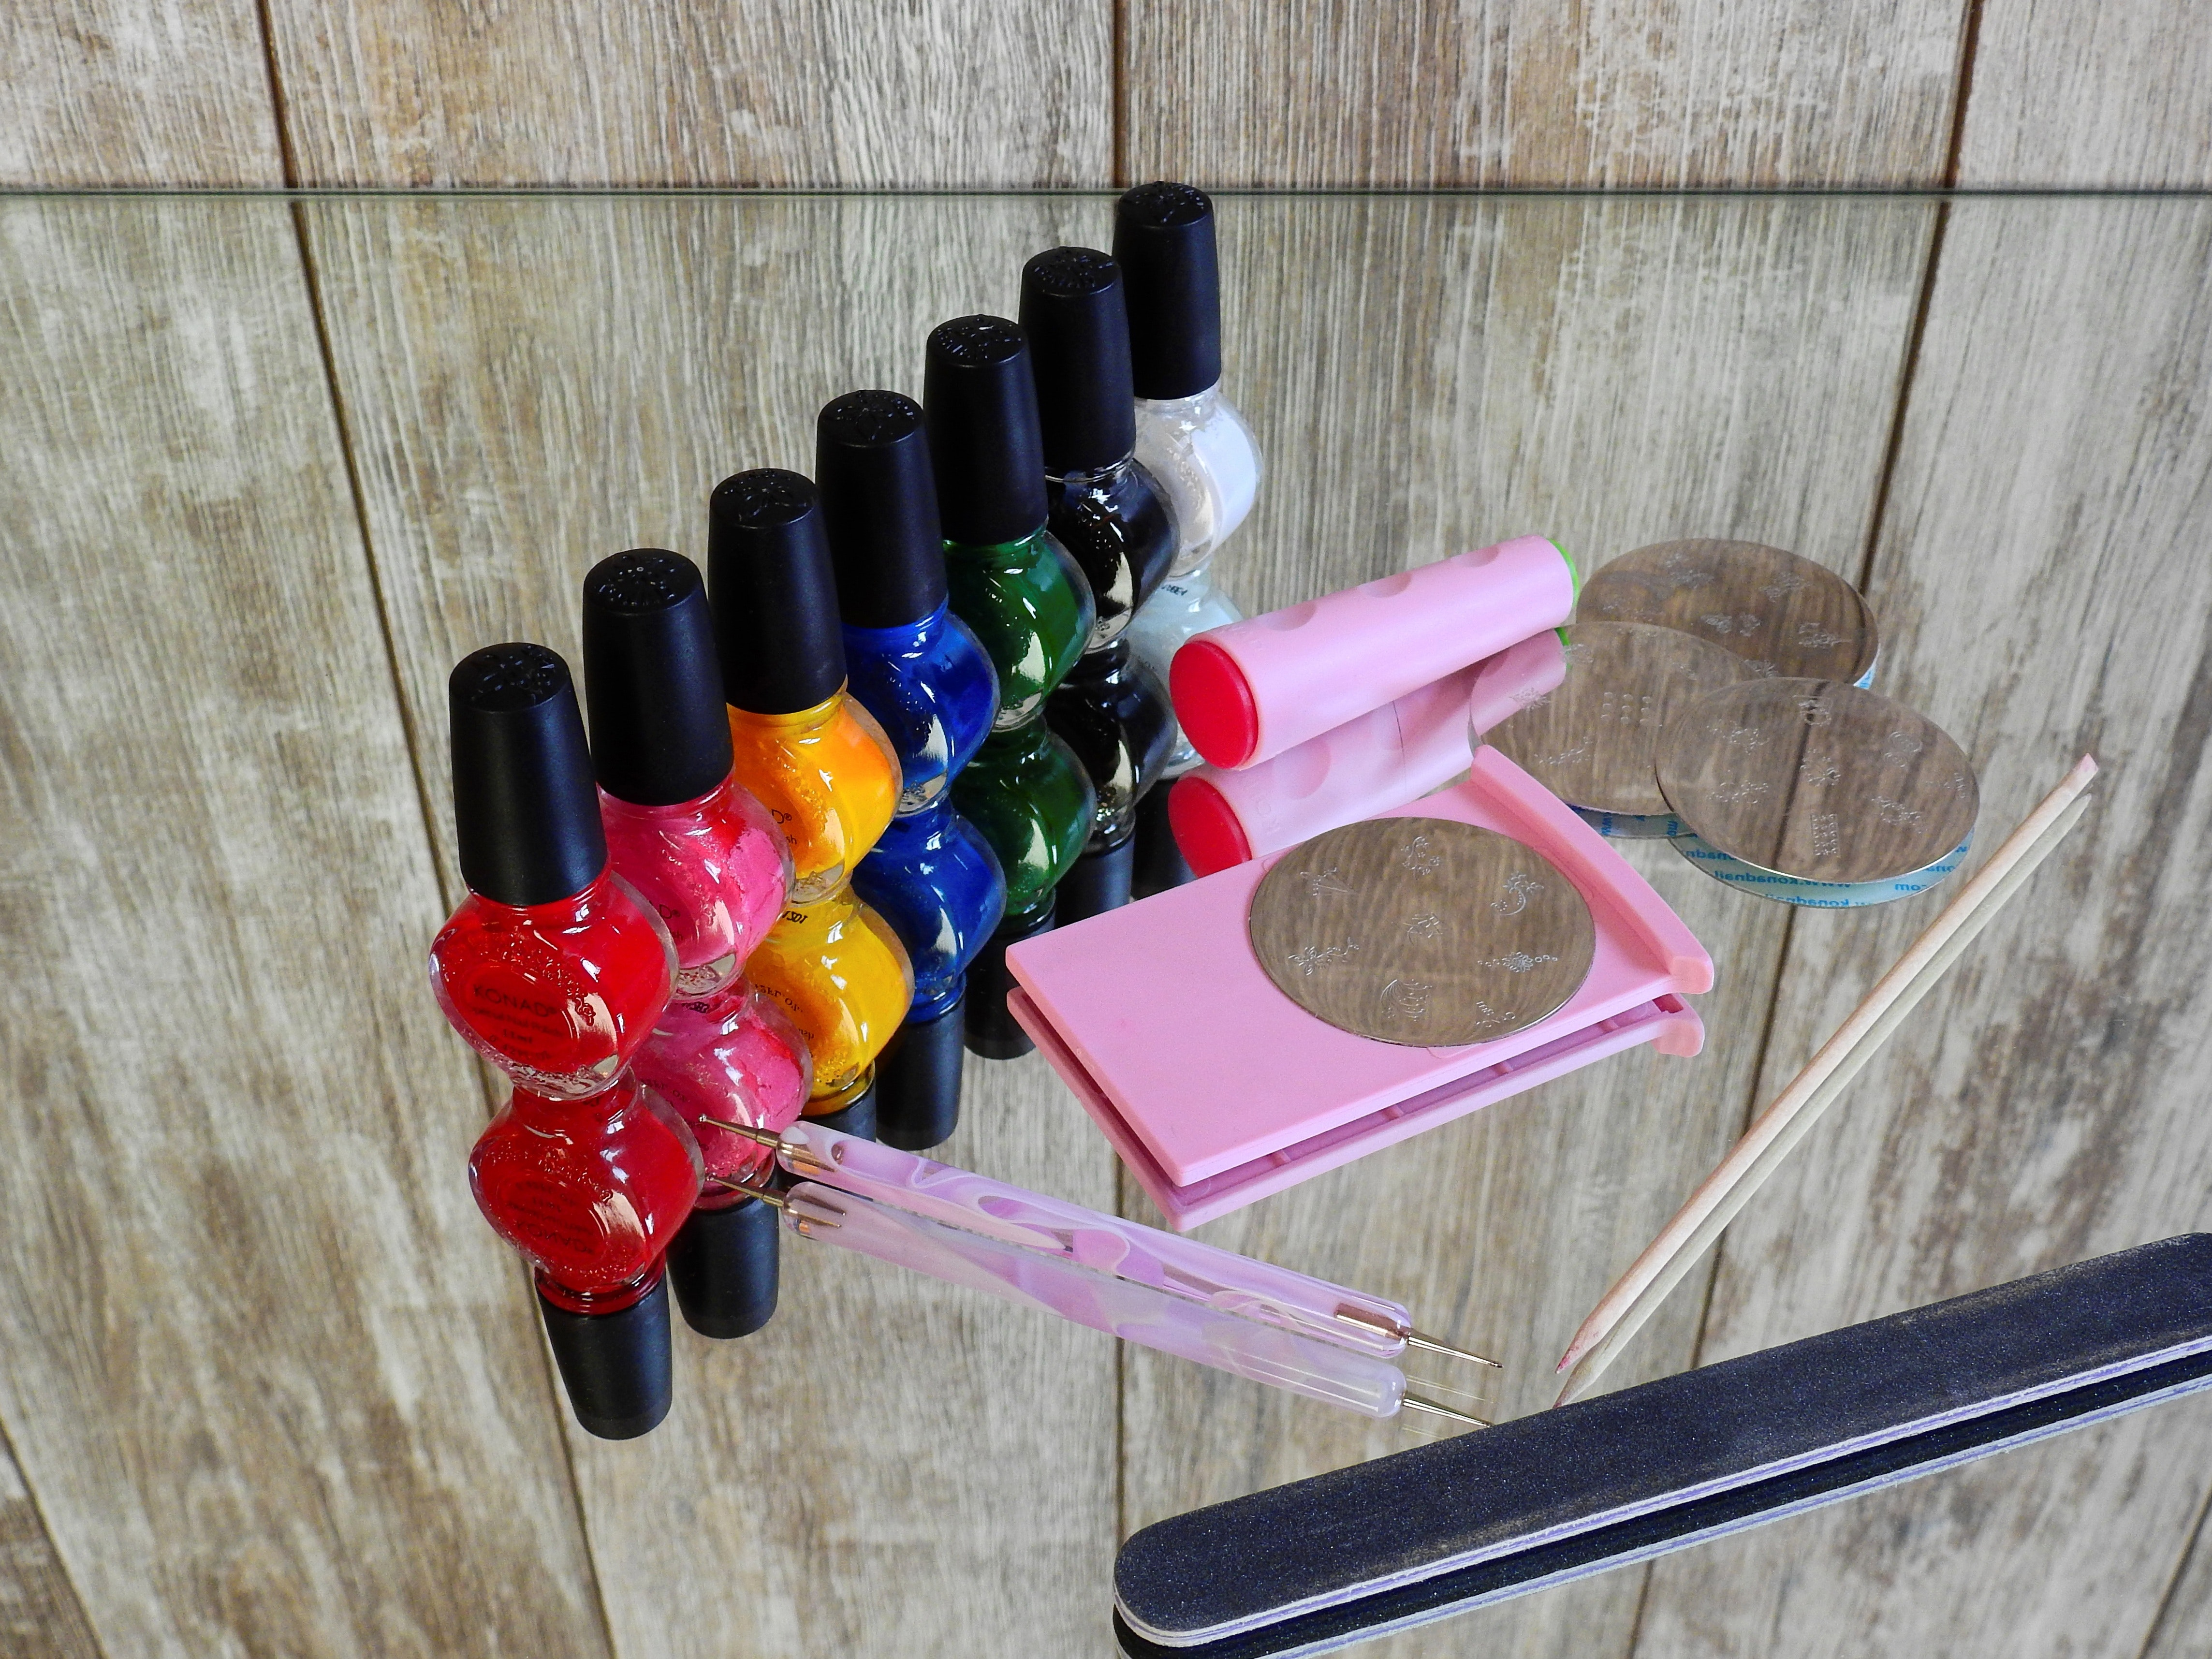 different colored Nail polishes with other equipment needed for nail designs